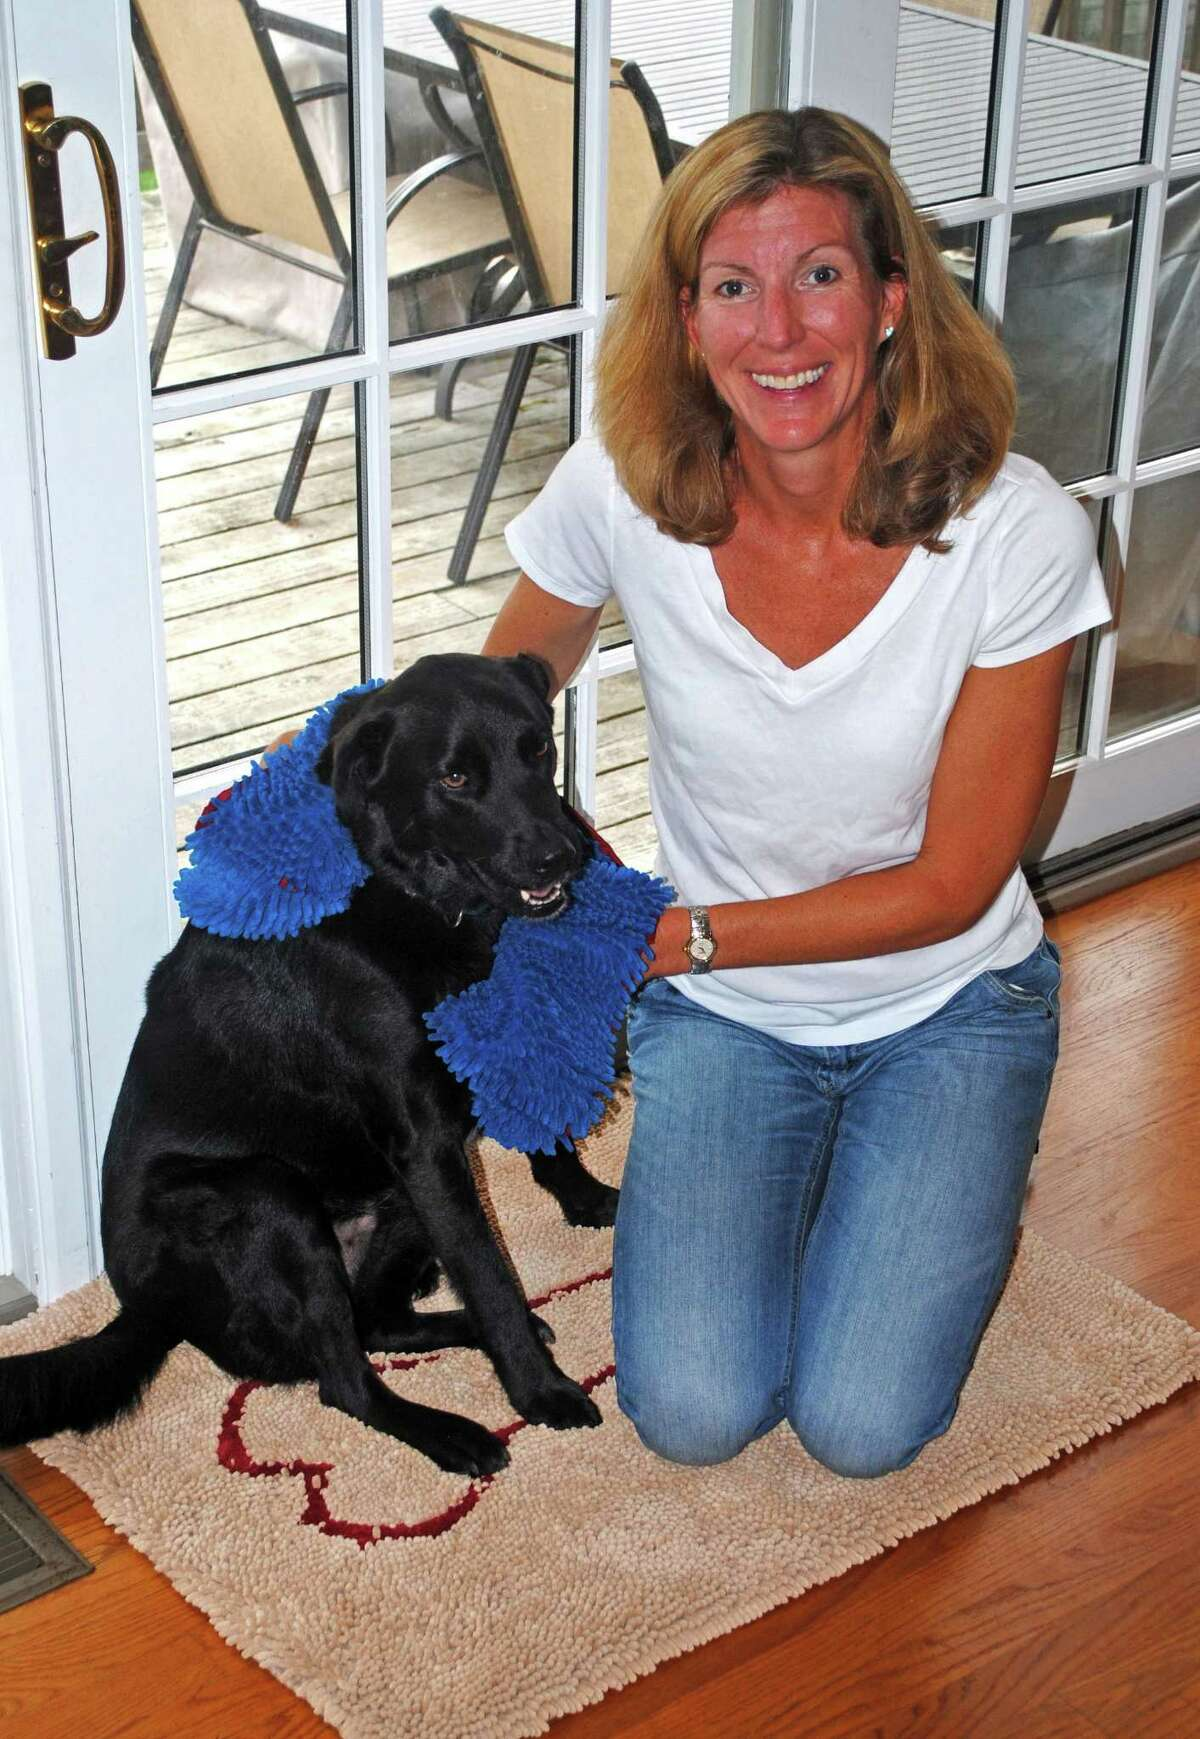 Joanna Rein, of Larchmont, N.Y., poses at her home with her Labrador-collie named Buddy. Because Buddy was always tracking mud or water into the house, Rein created Soggy Doggy, a doormat that absorbs most of the mess on the mutt.